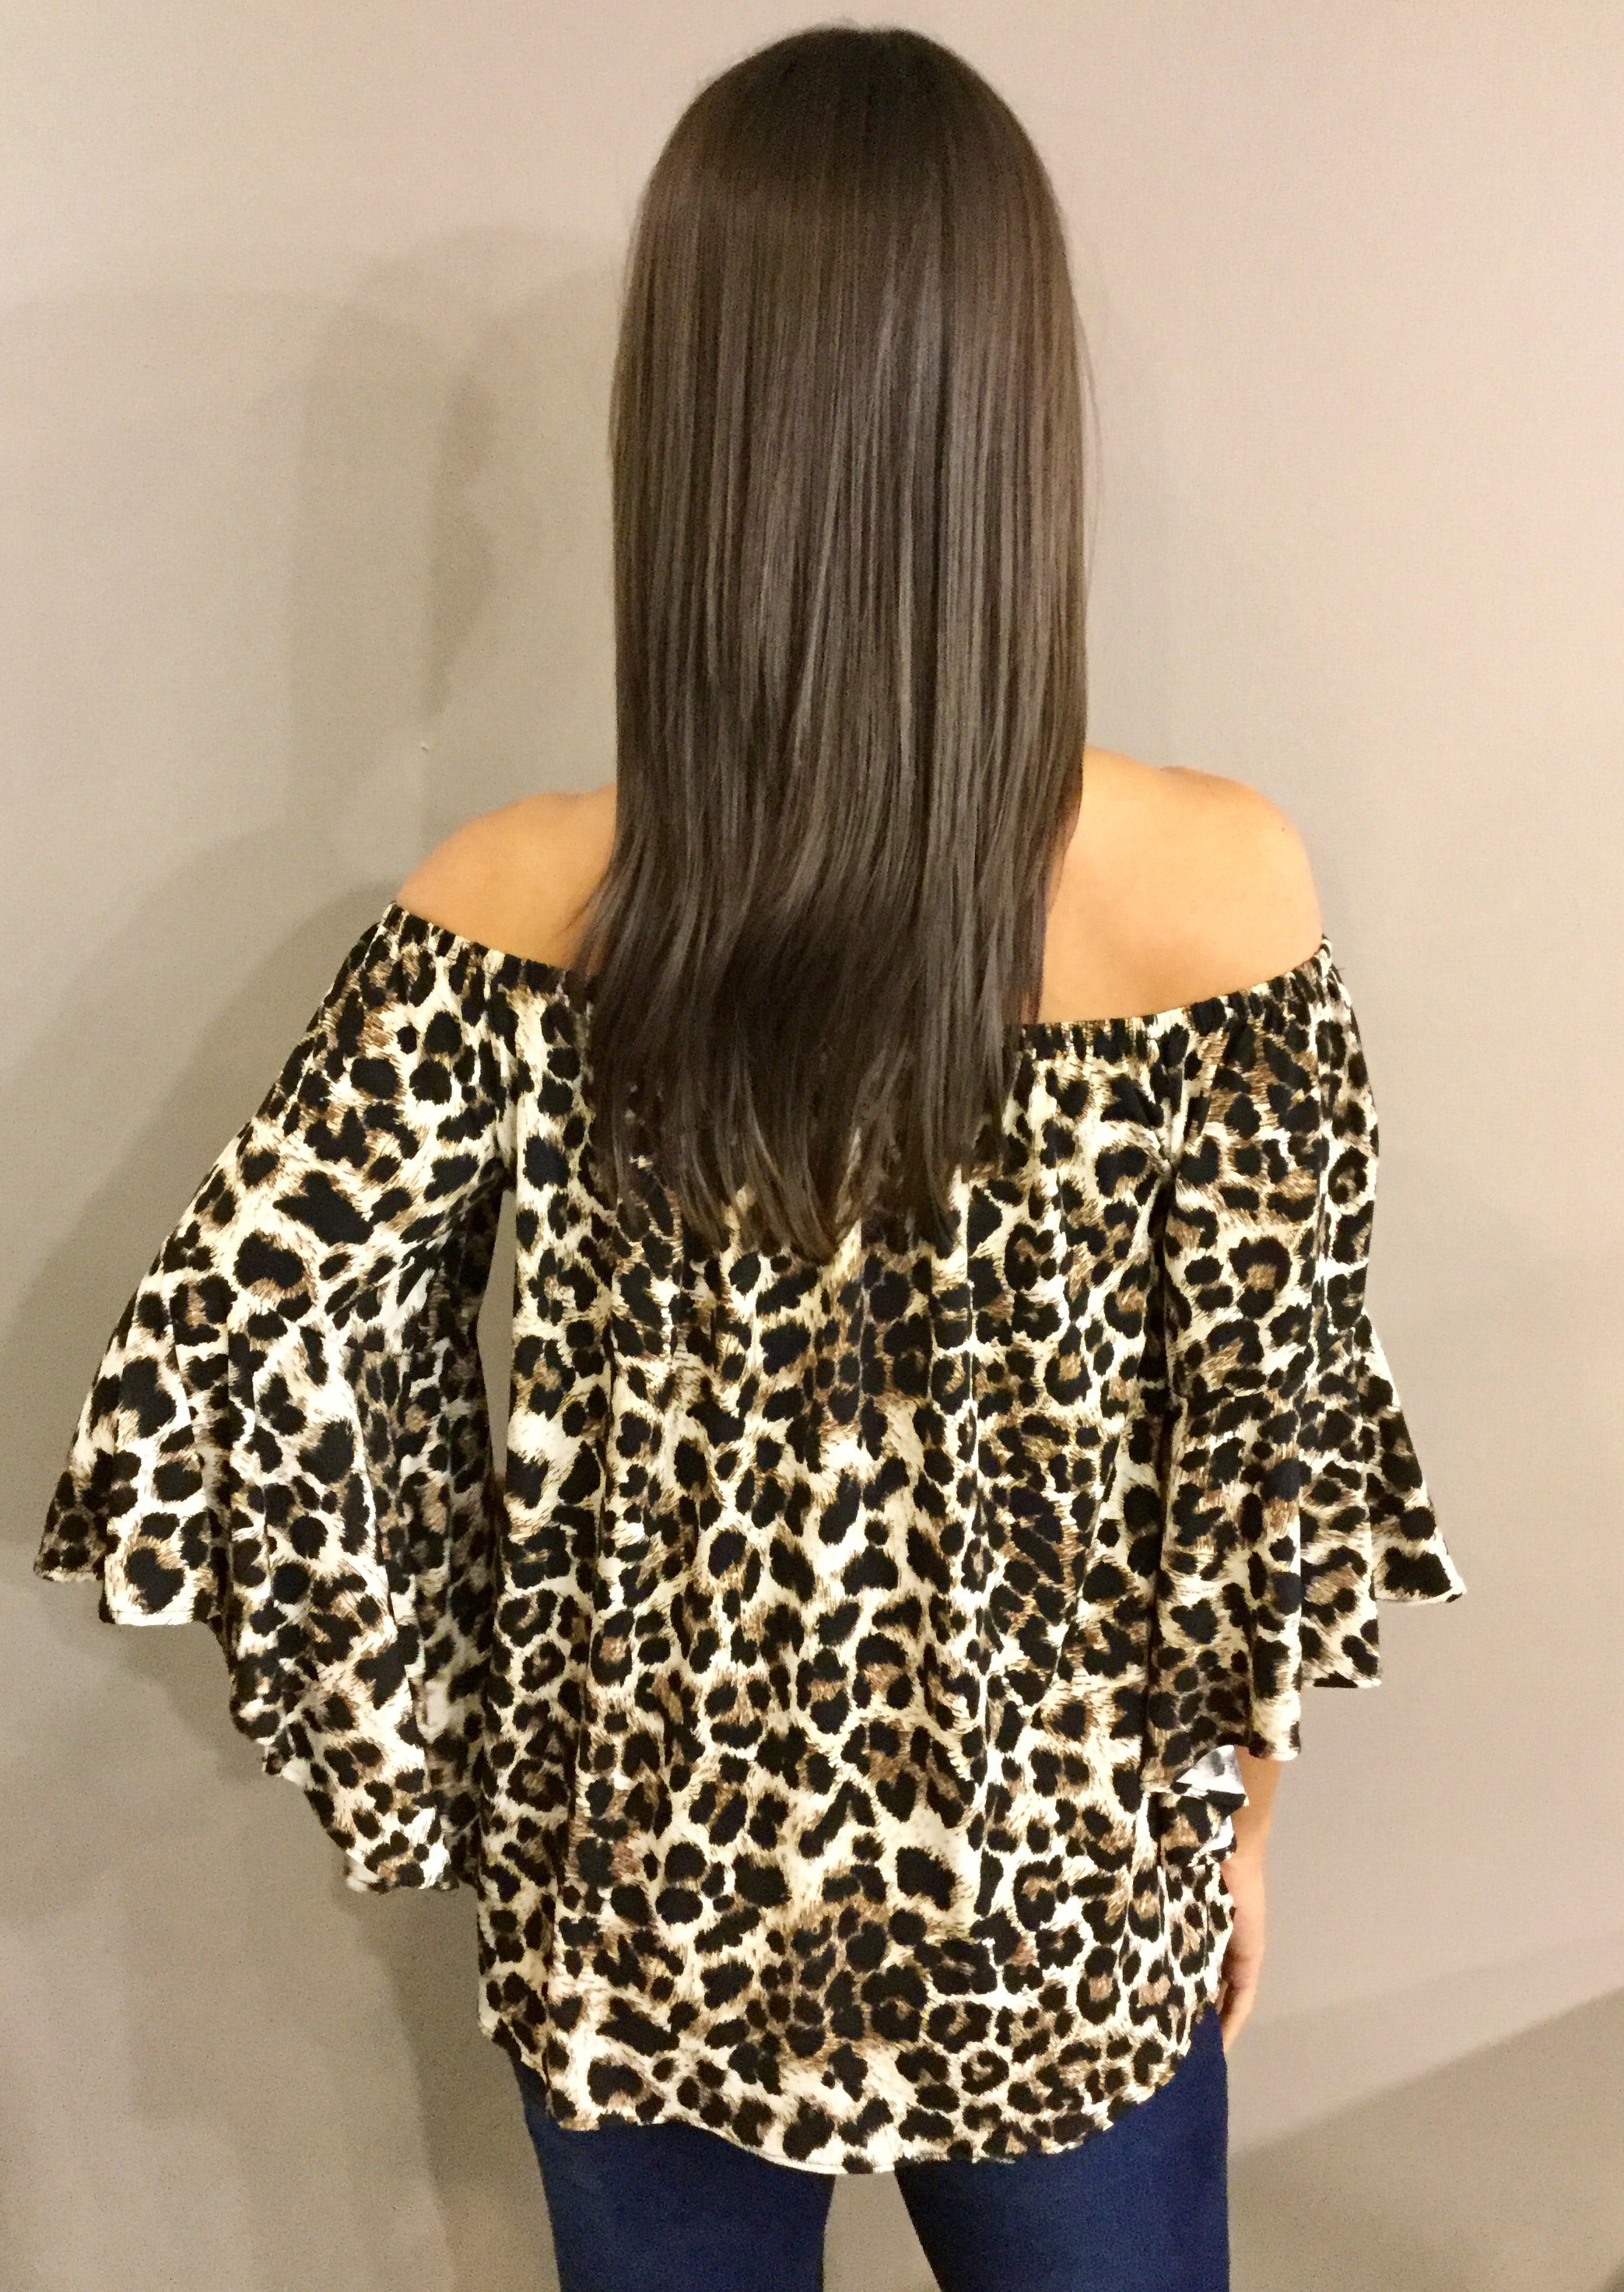 THE CAT'S MEOW LEOPARD PRINT TOP